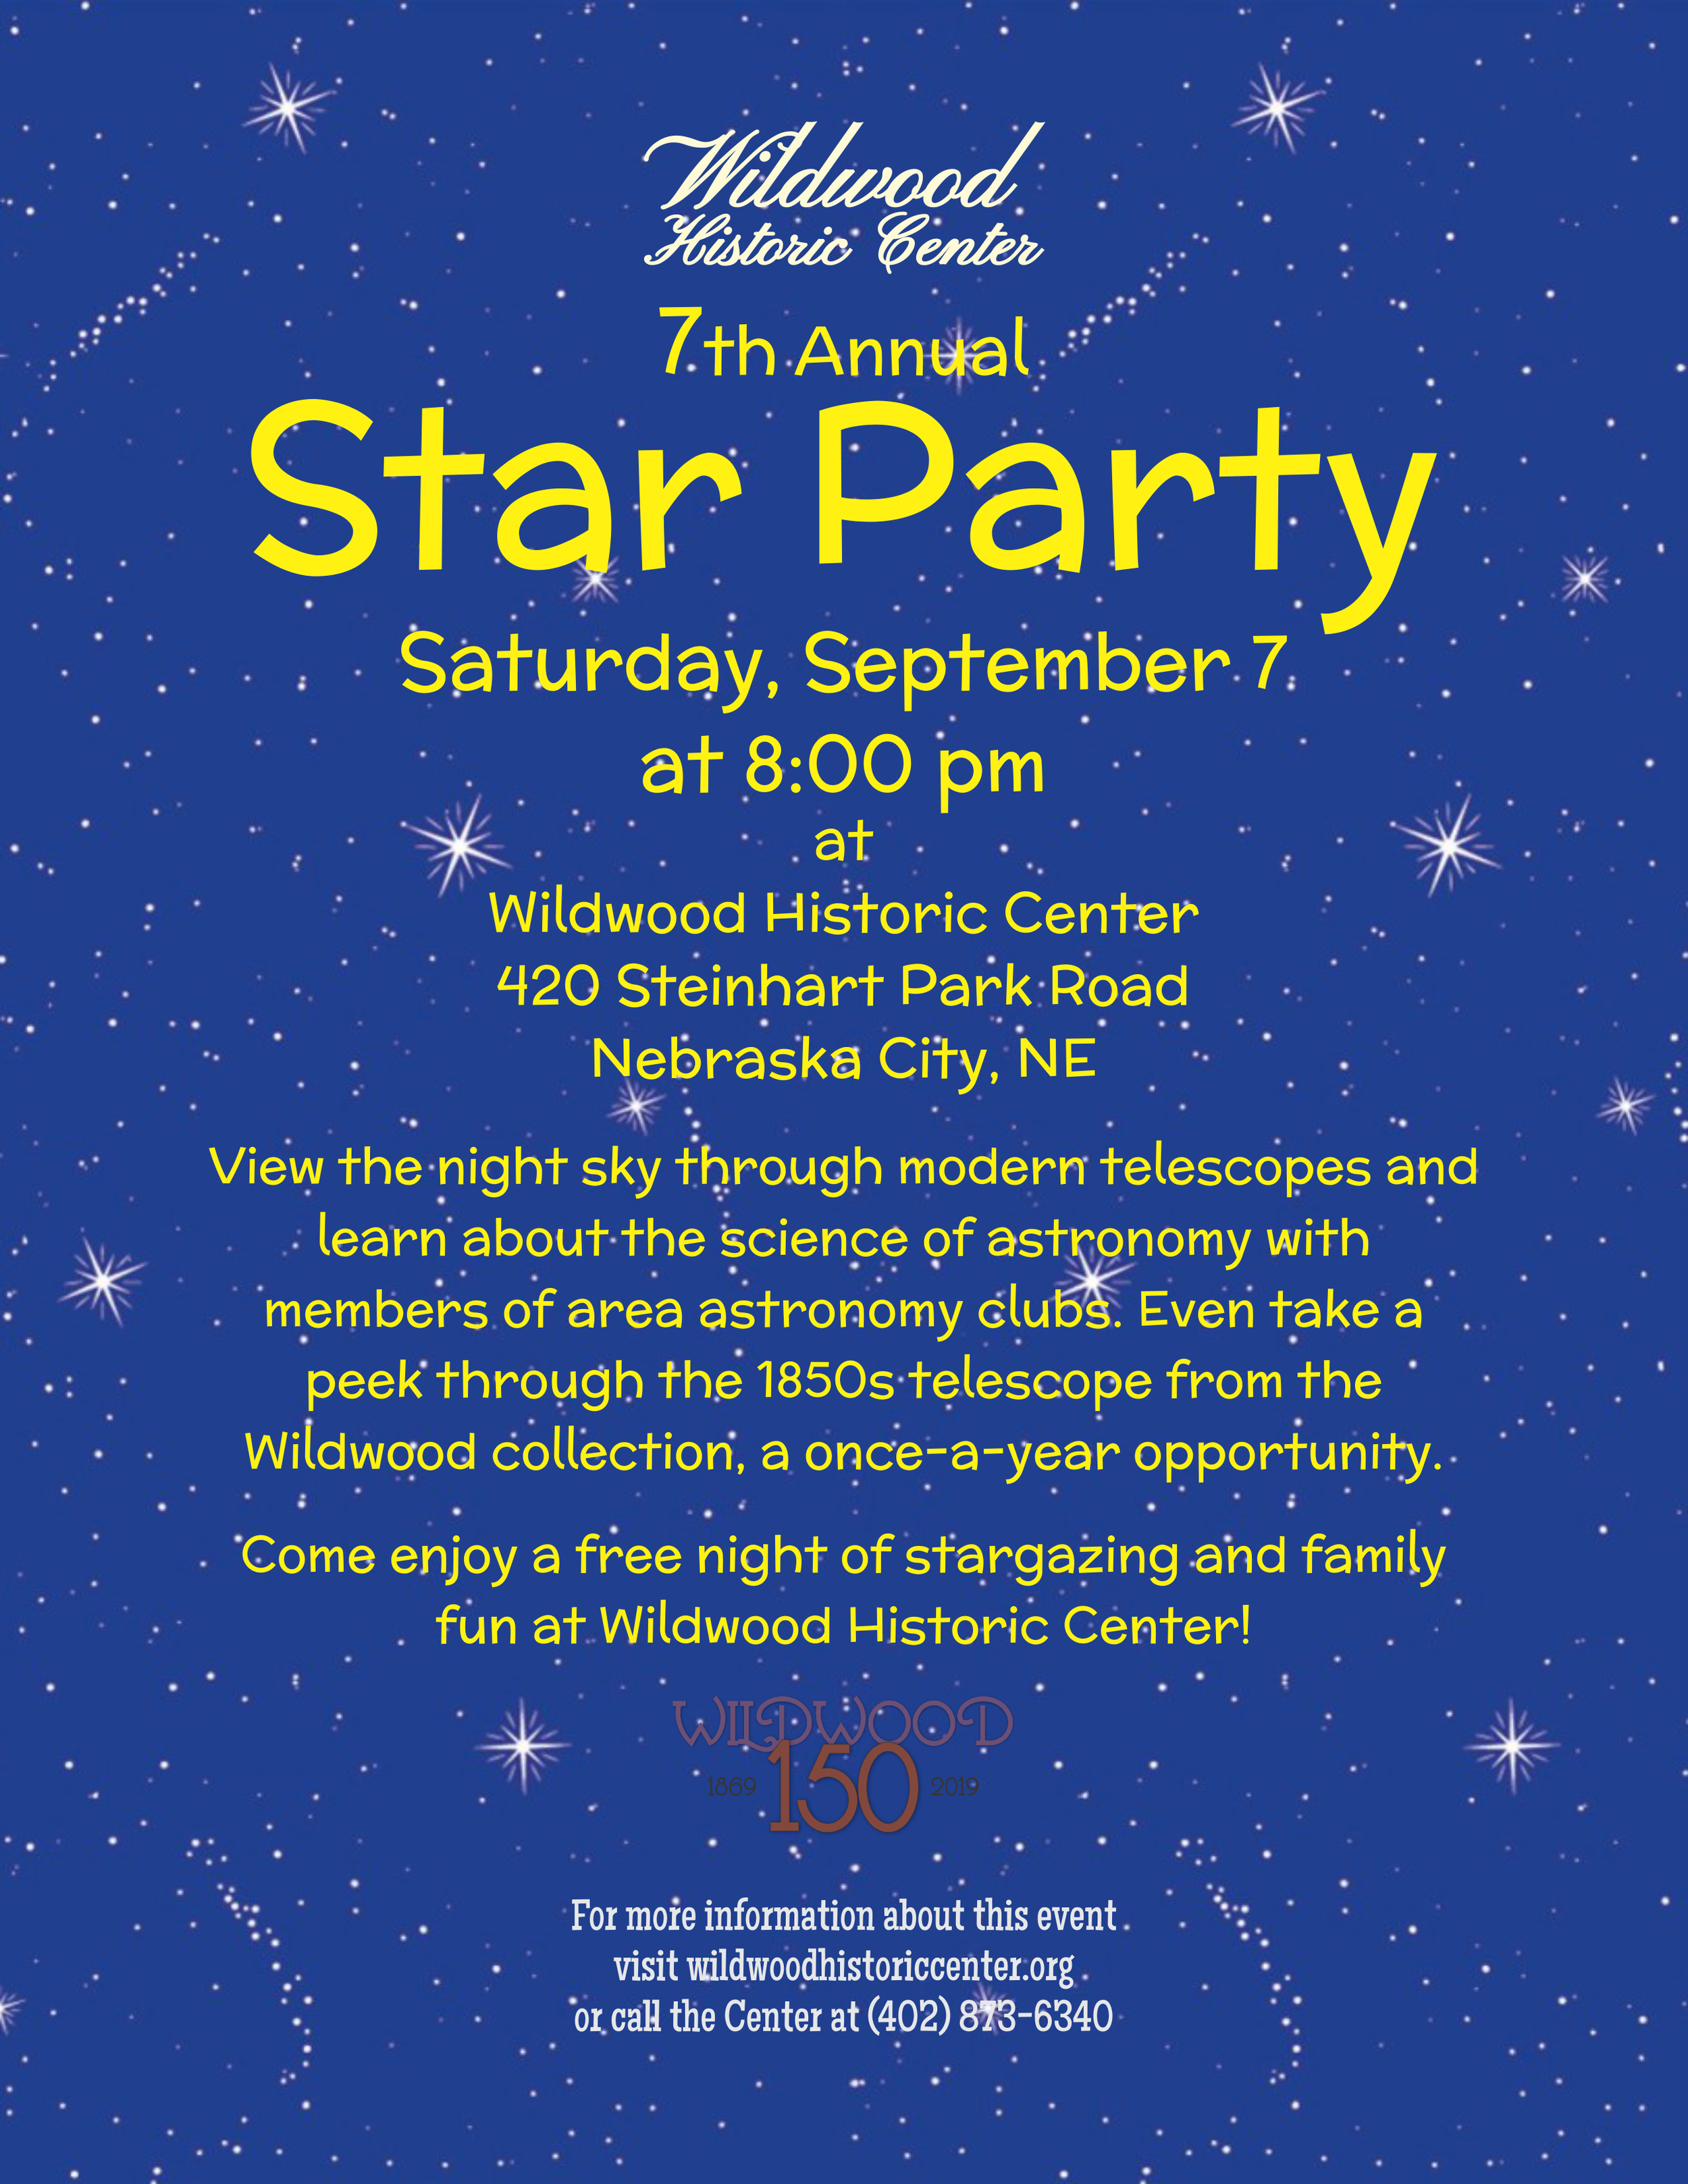 Star Party Flyer 2019.png